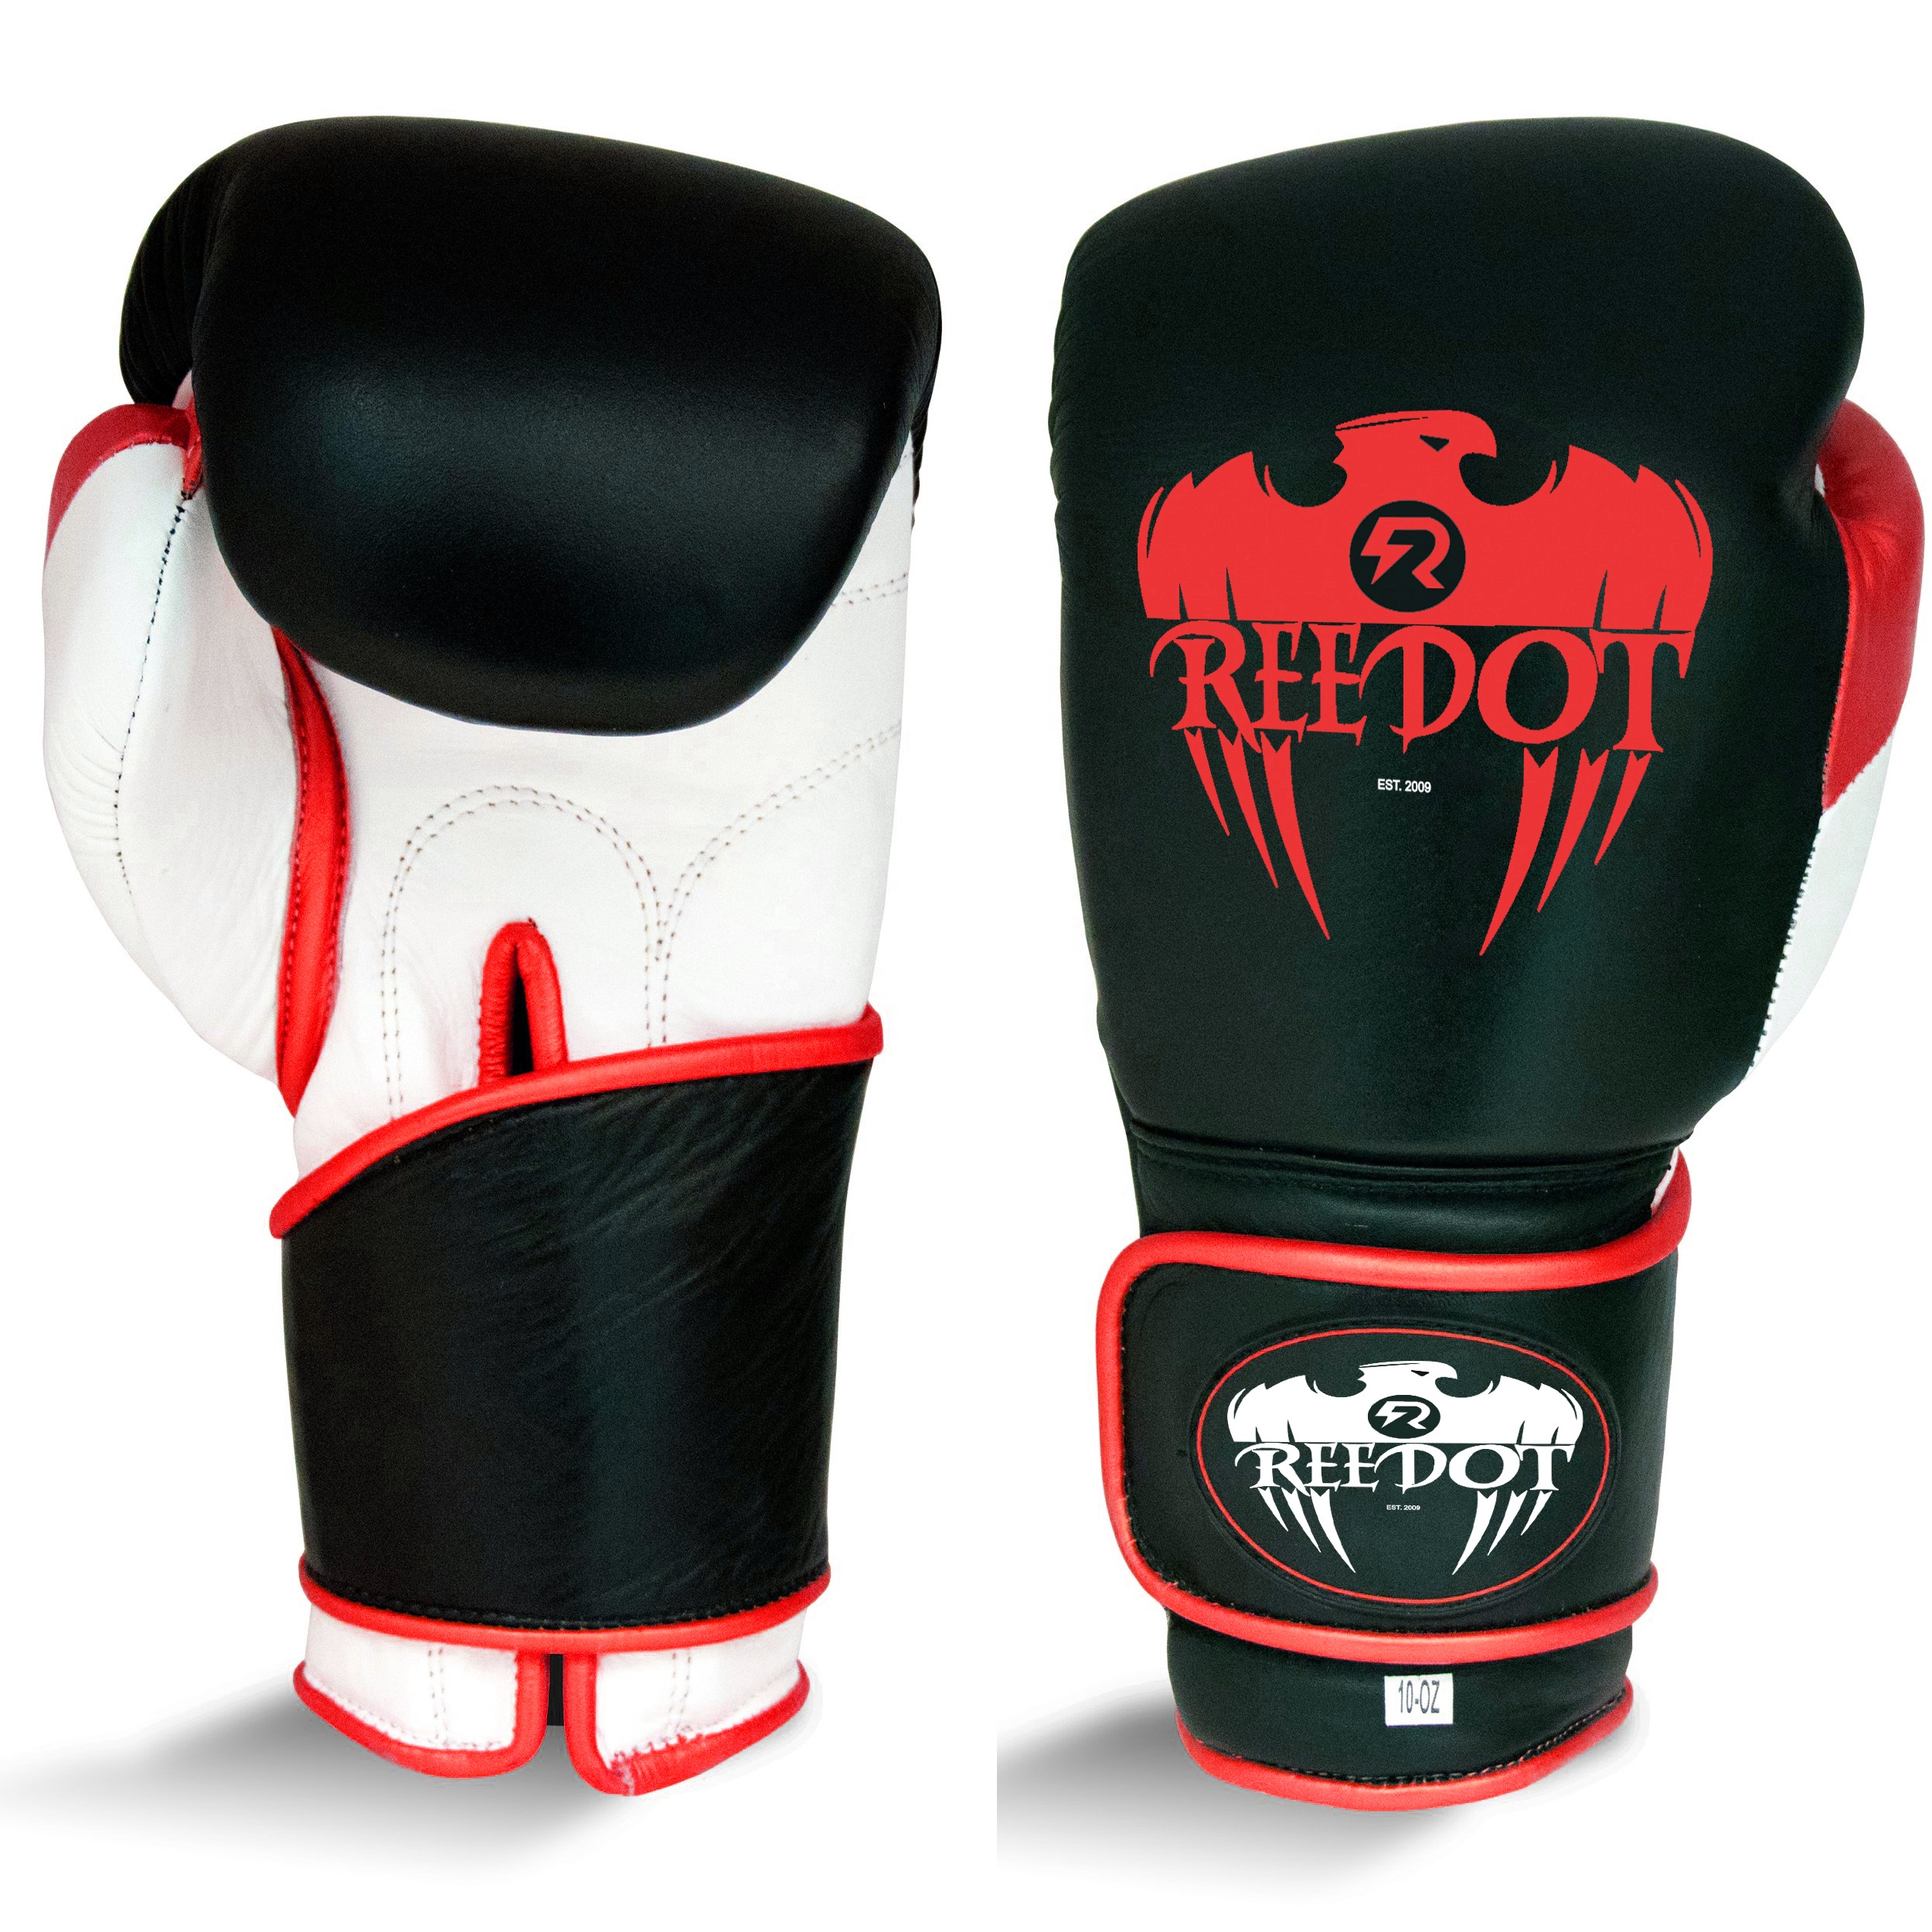 Superior Professional Sparring Boxing Gloves Muay Thai Kickboxing gloves MMA PRO